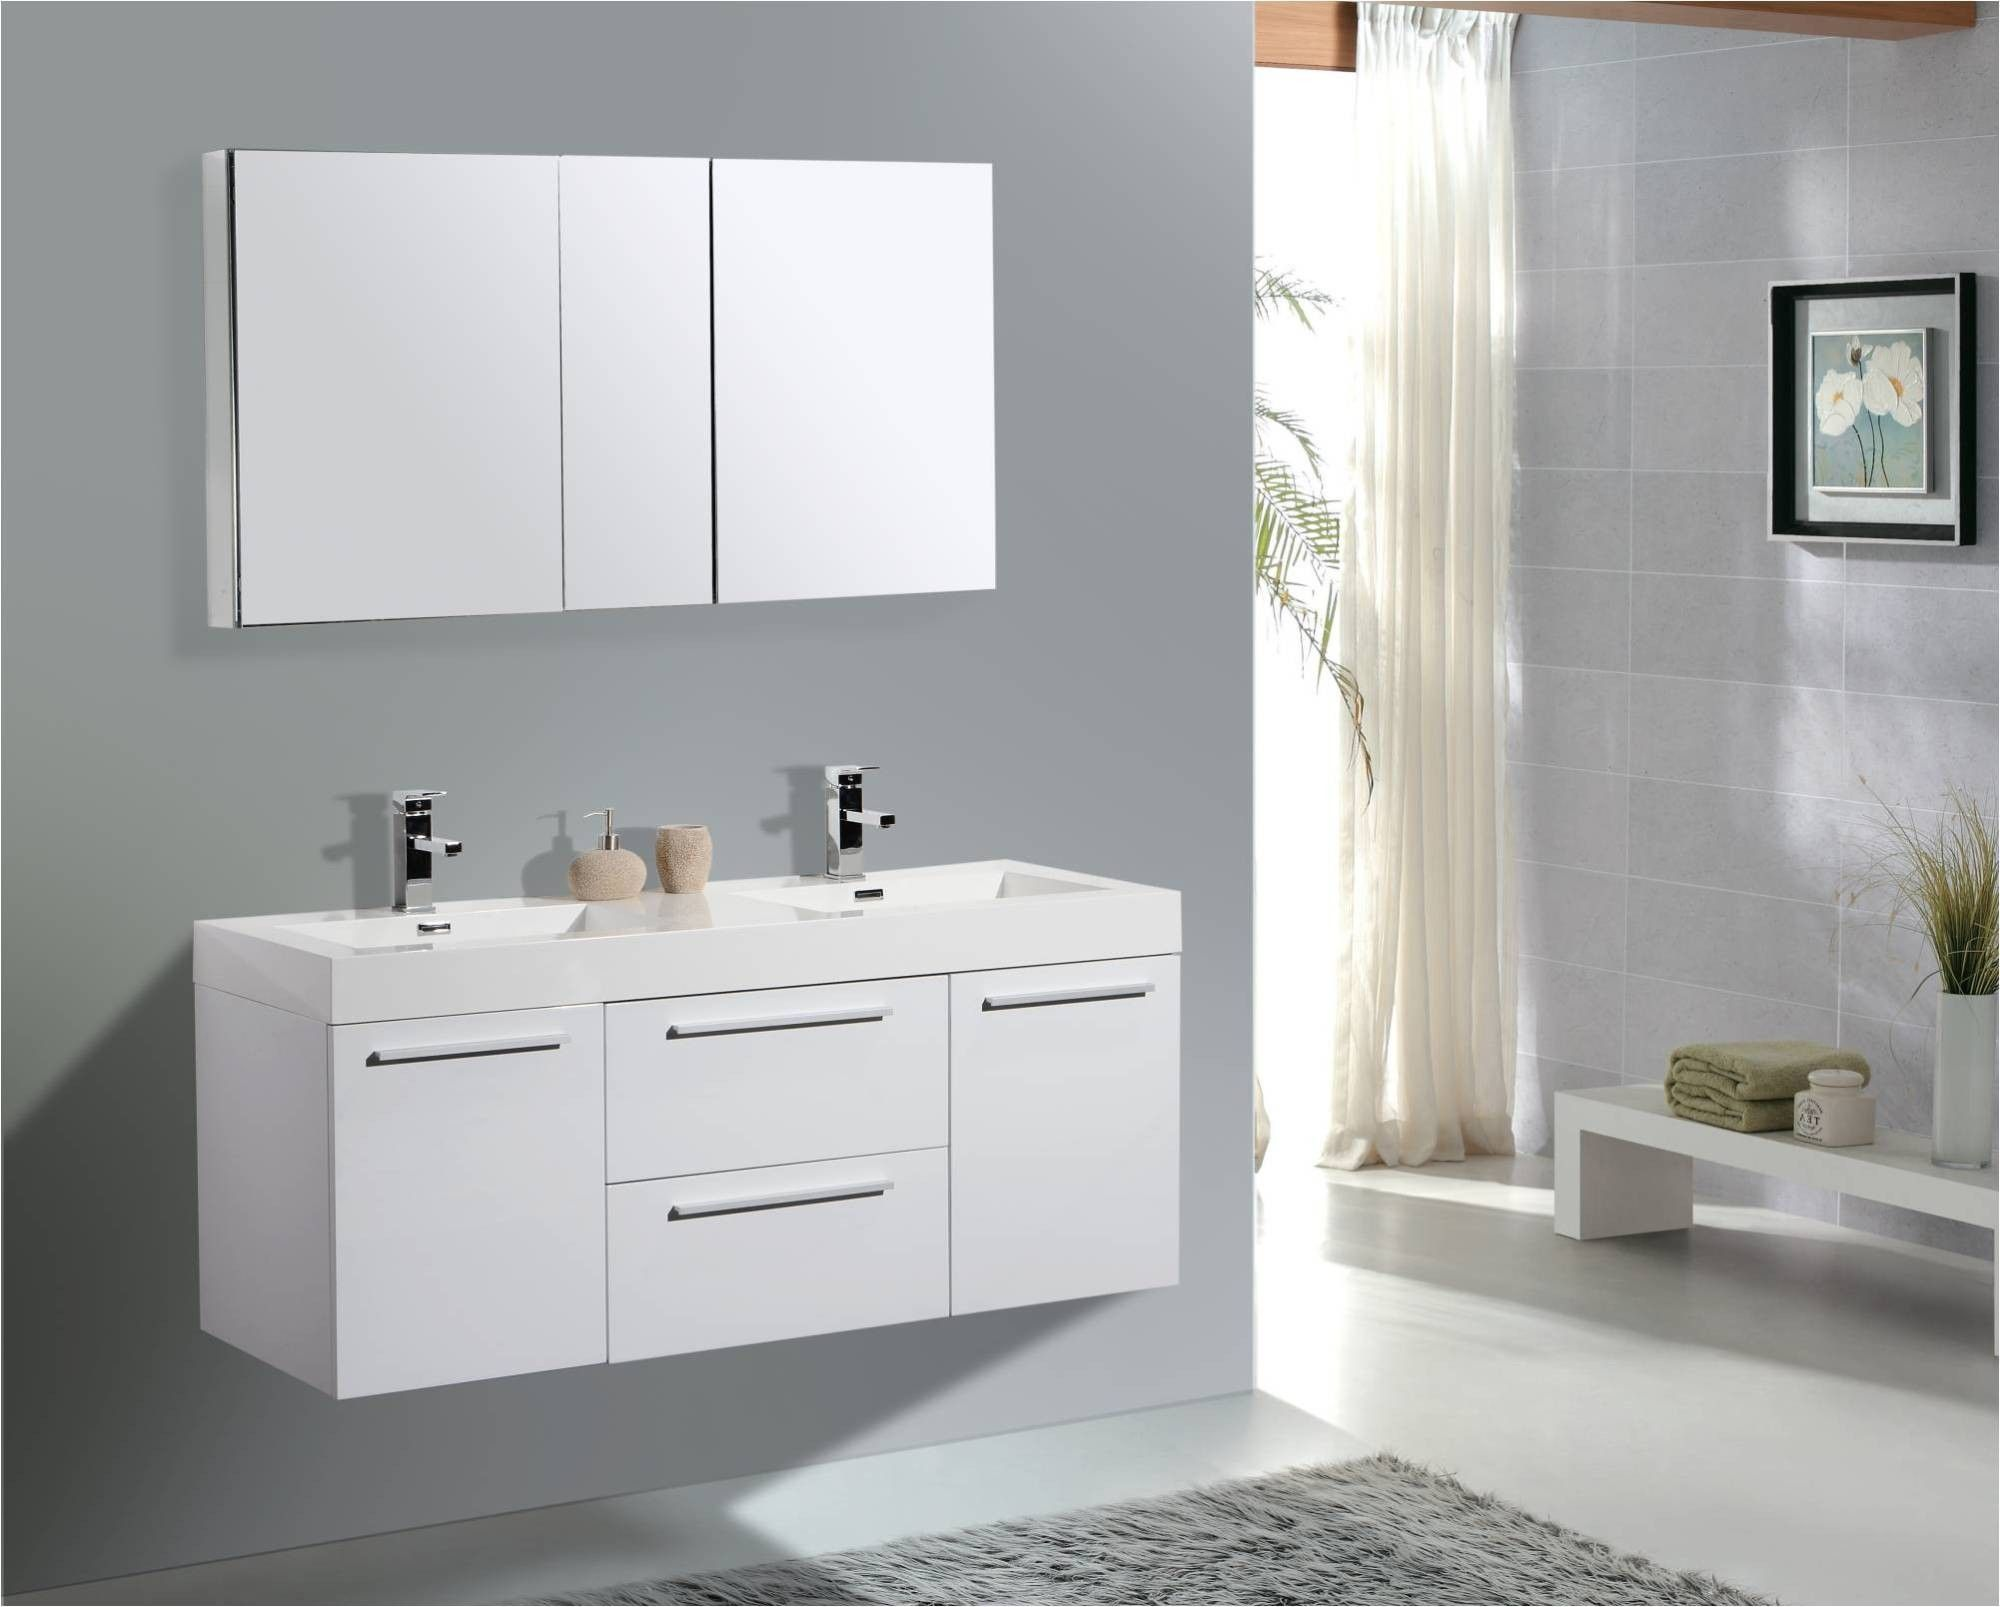 Bathroom Vanities Austin aqua decor austin 54-inch modern double sink bathroom vanity w